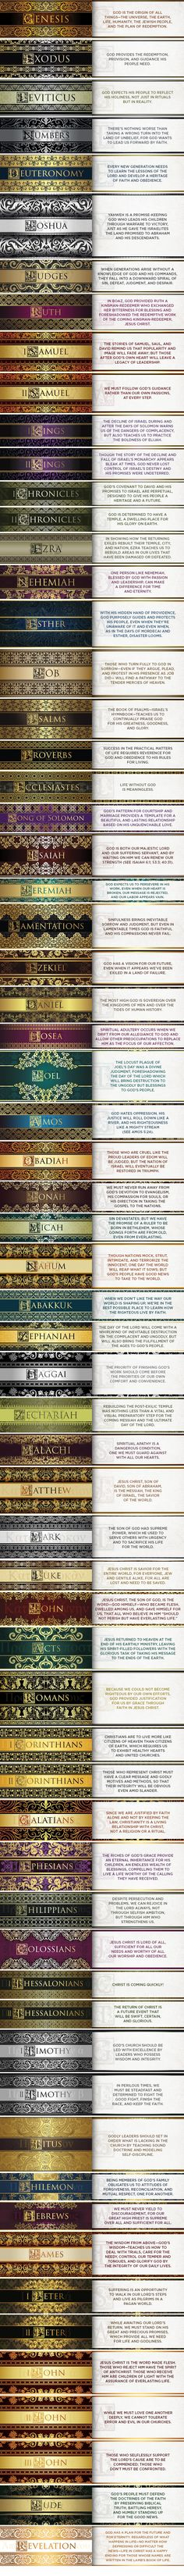 Books of the Bible and the truths they teach.